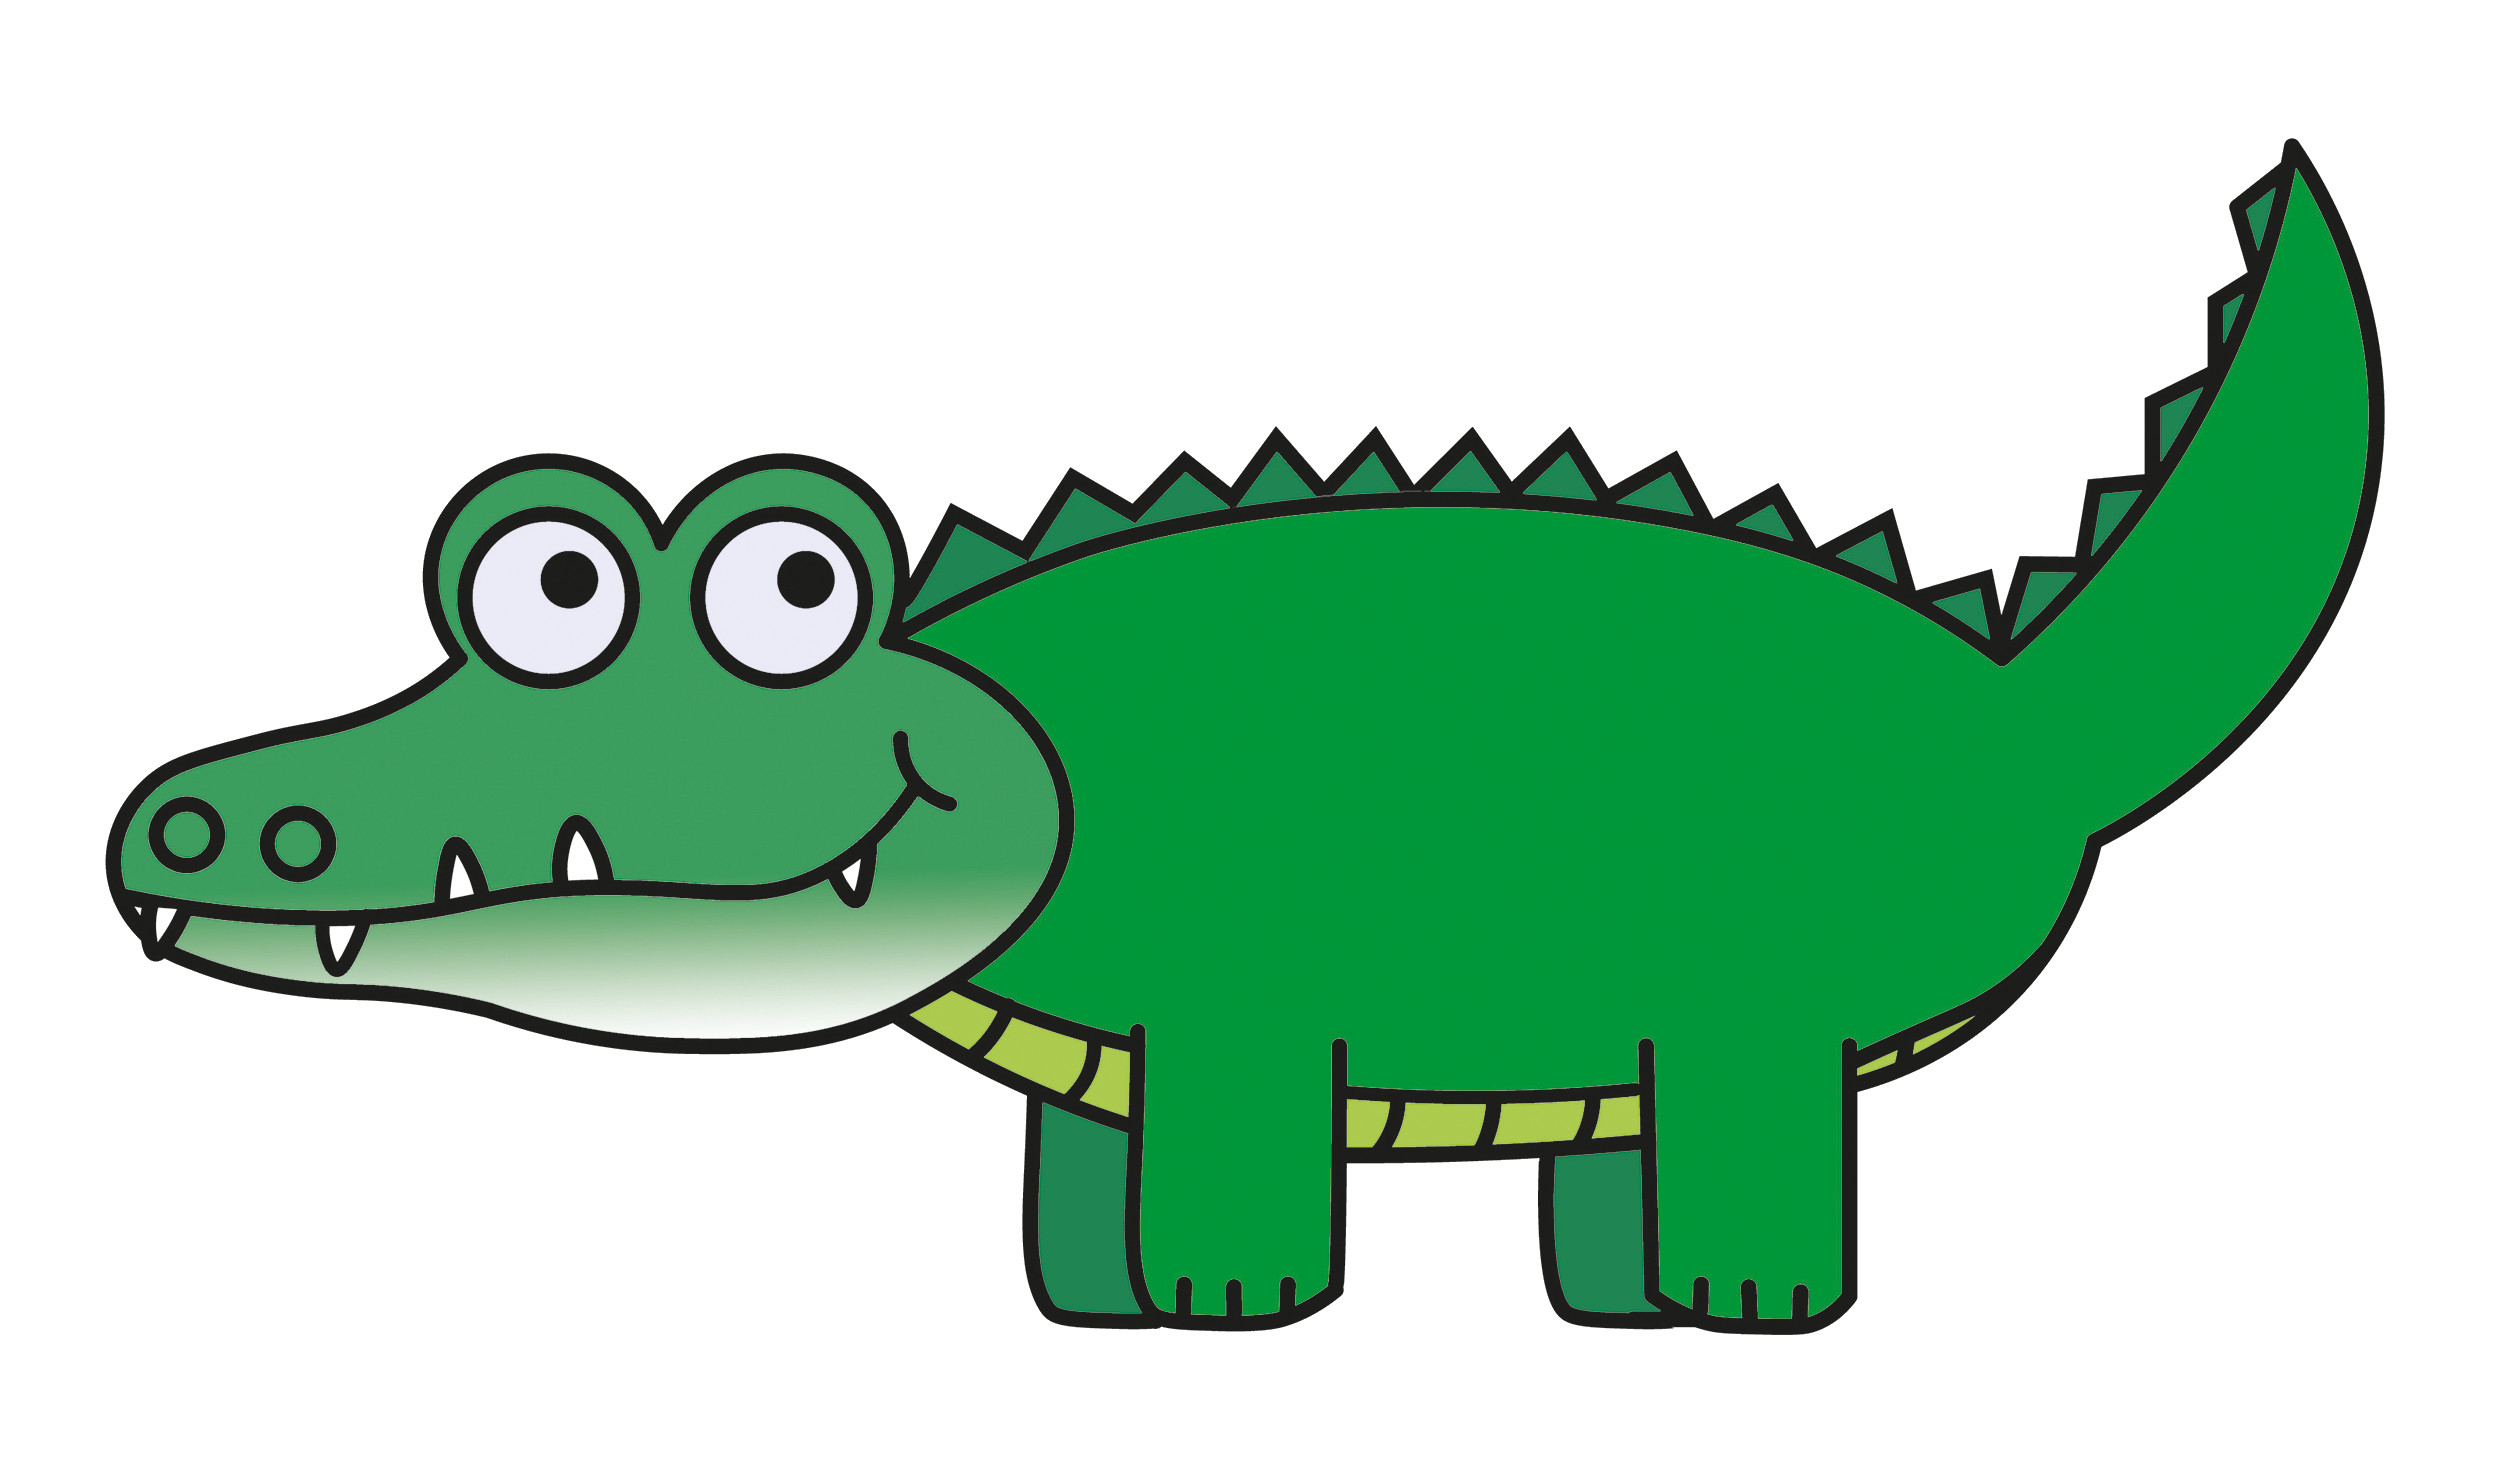 Alligator clipart adorable. Free transitionsfv panda images